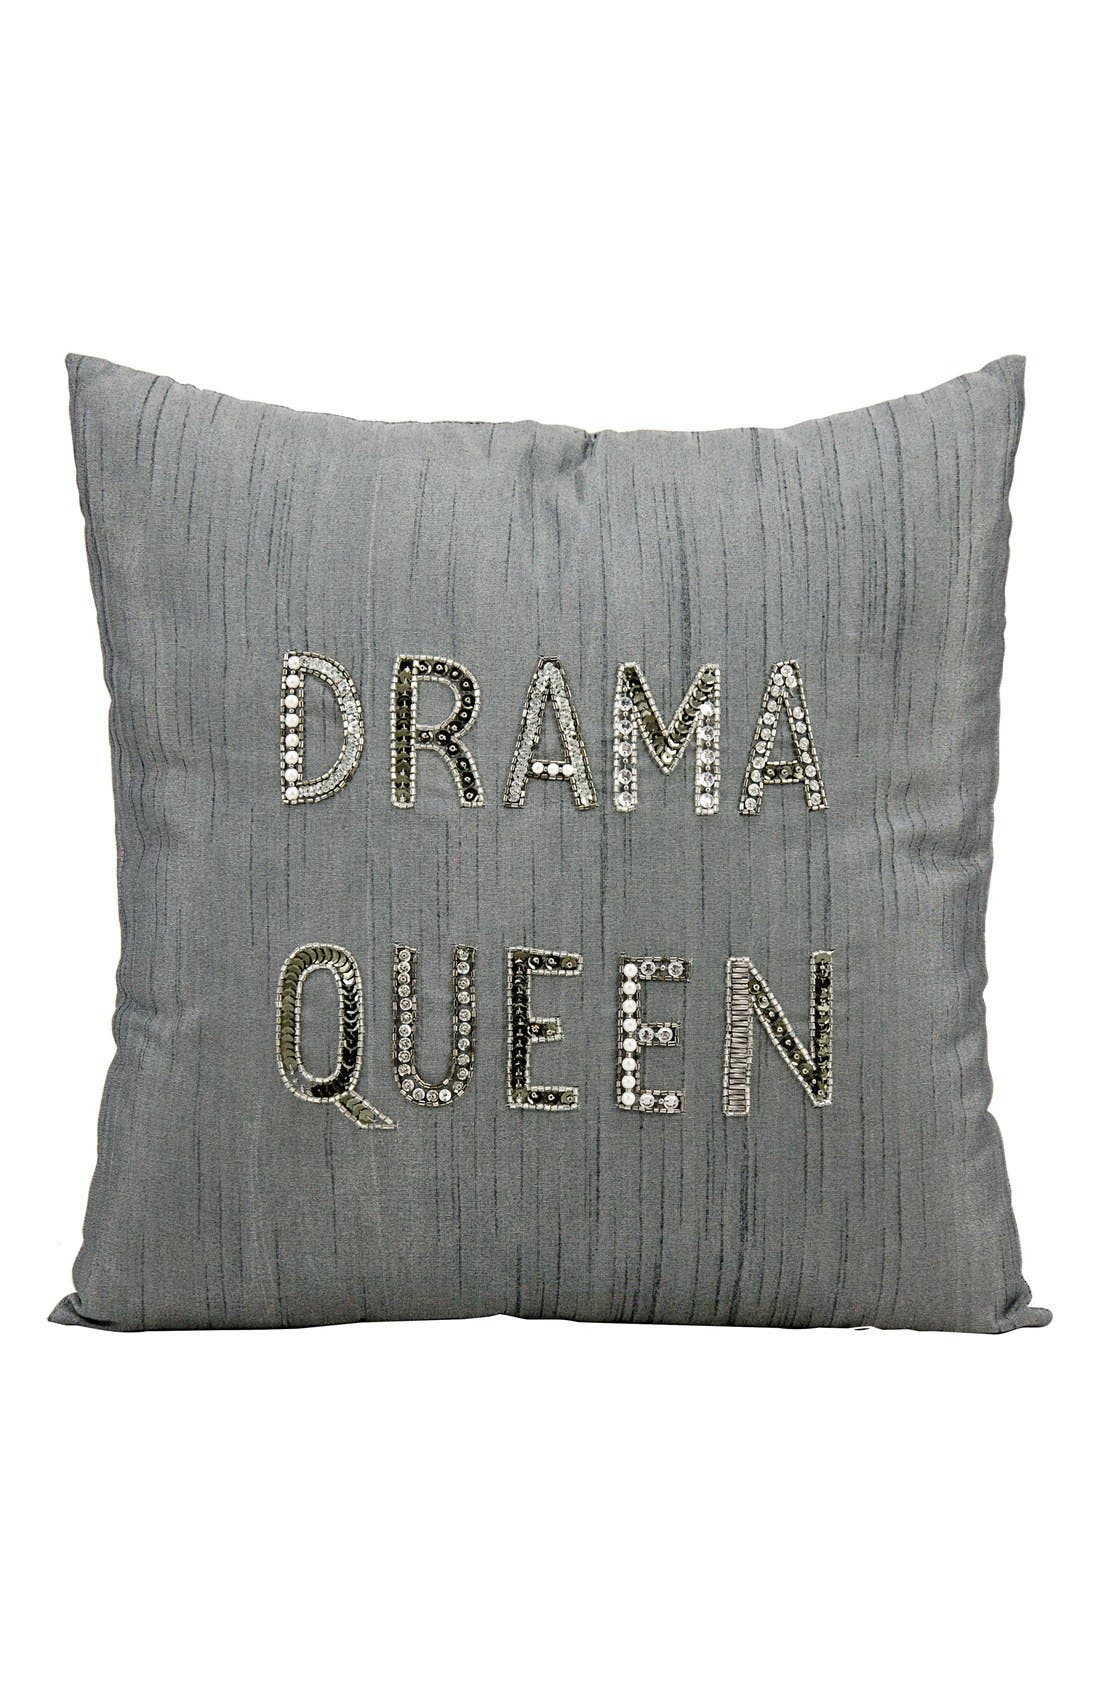 Mina Victory 'Drama Queen' Pillow